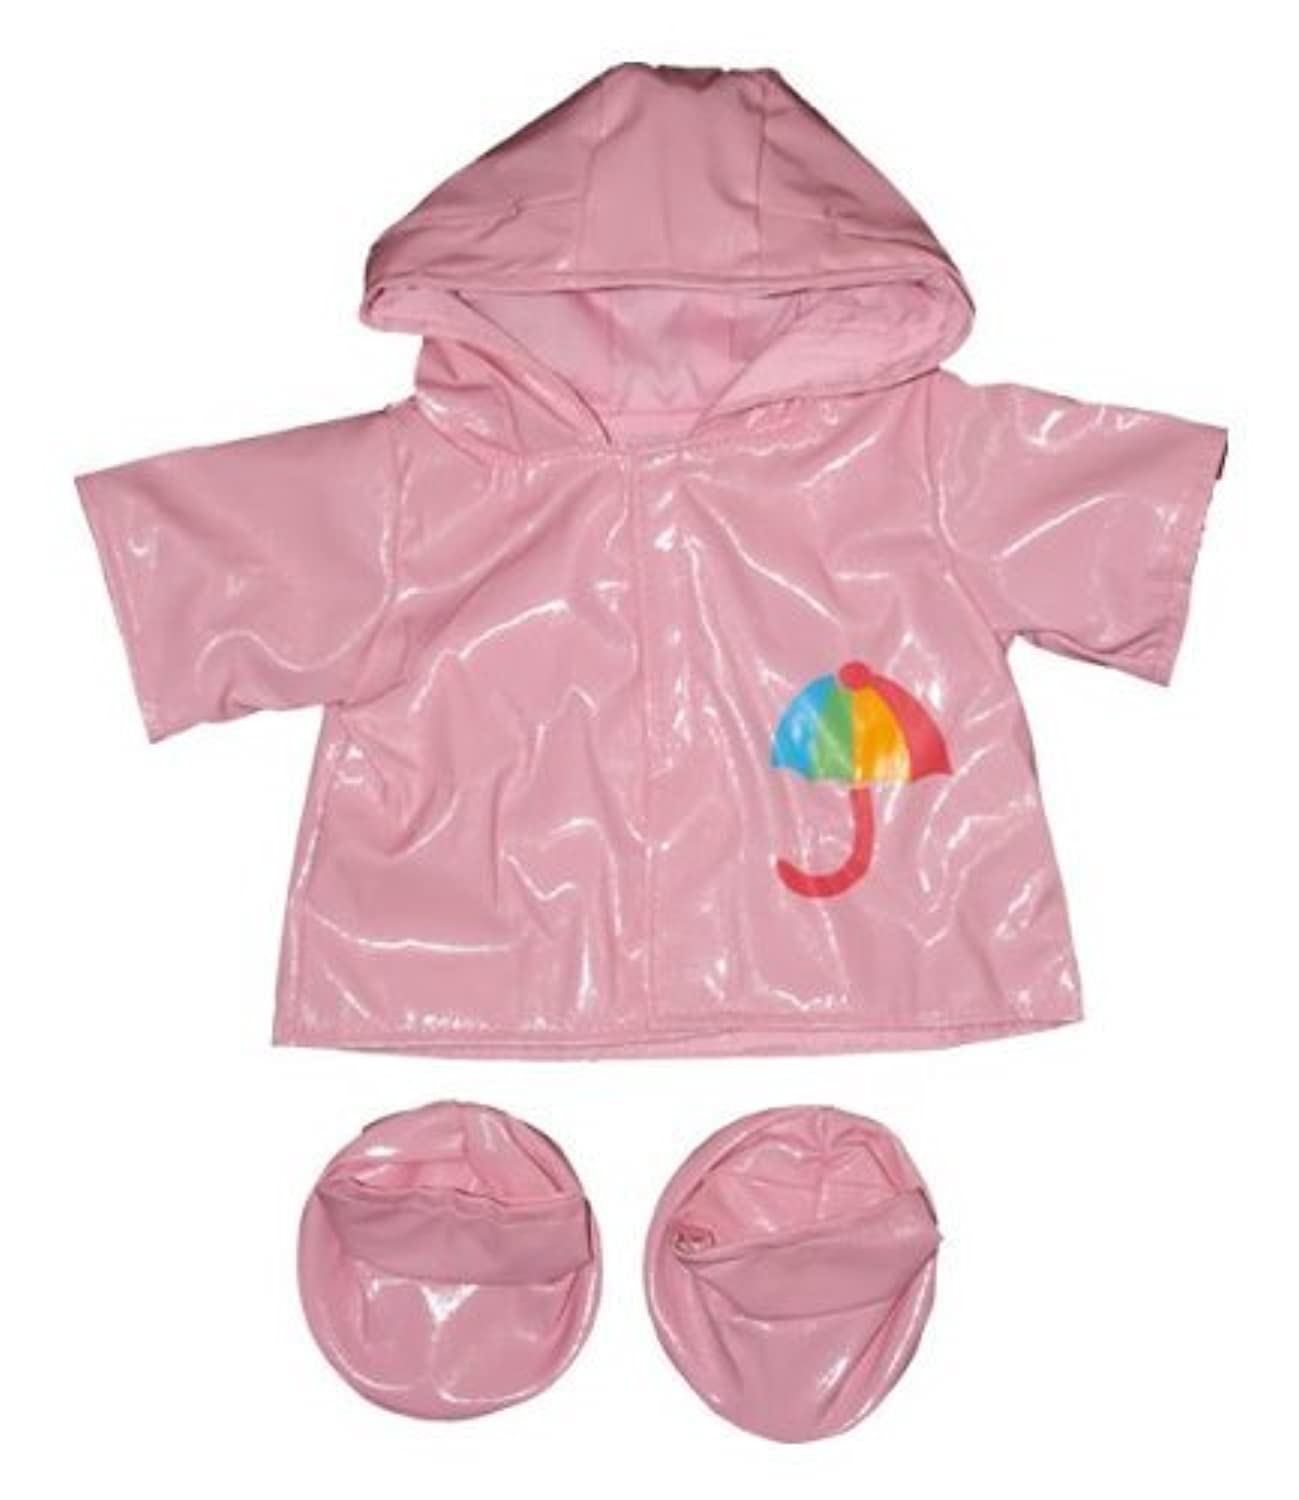 Pink Raincoat w/Boots Outfit Teddy Bear Clothes Fits Most 14 - 18 Build-A-Bear, Vermont Teddy Bears, and Make Your Own Stuffed Animals by Stuffems Toy Shop